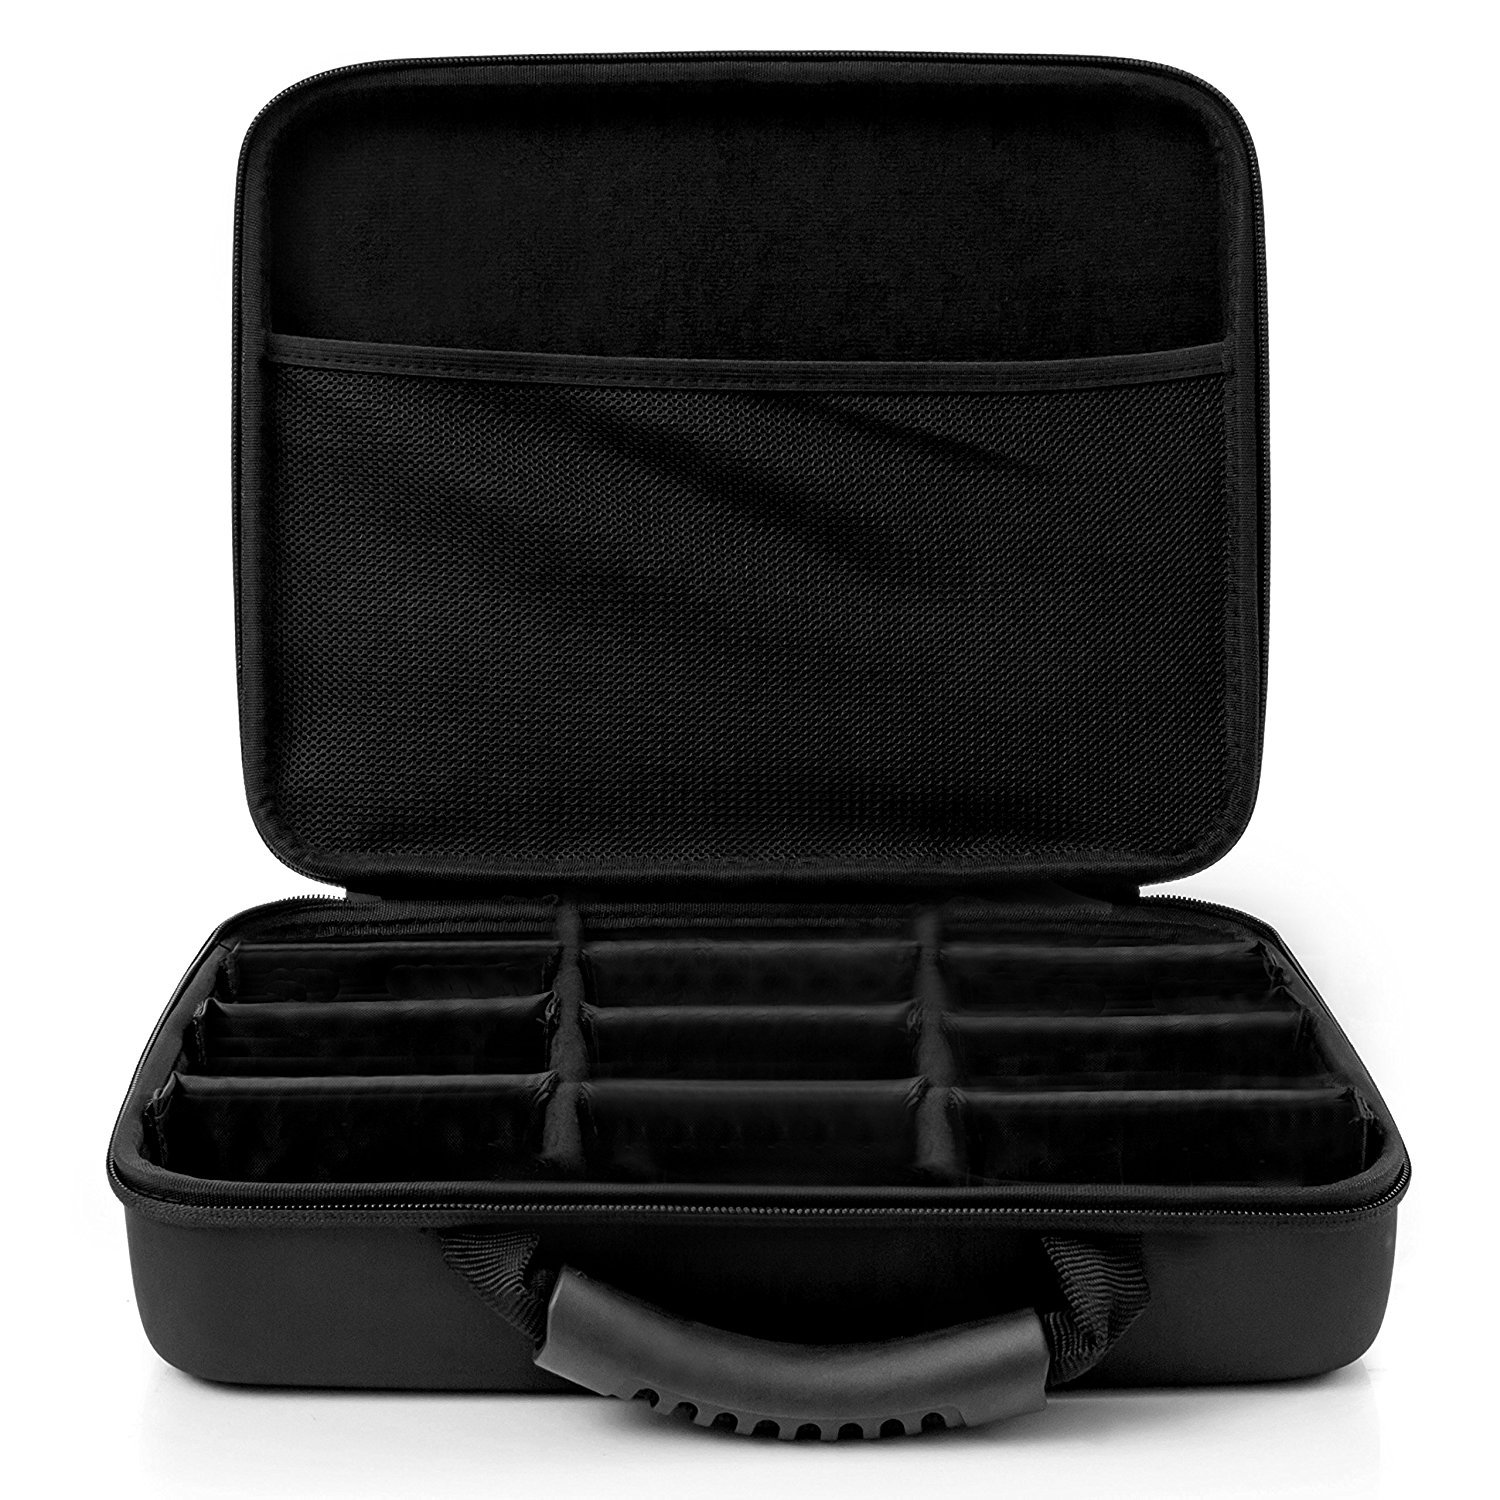 Portable Card Game Case for 2,200+ Cards. Compatible with Cards Against Humanity, MTG, Pokemon & More! (Extra Large) by CaseStache (Image #6)